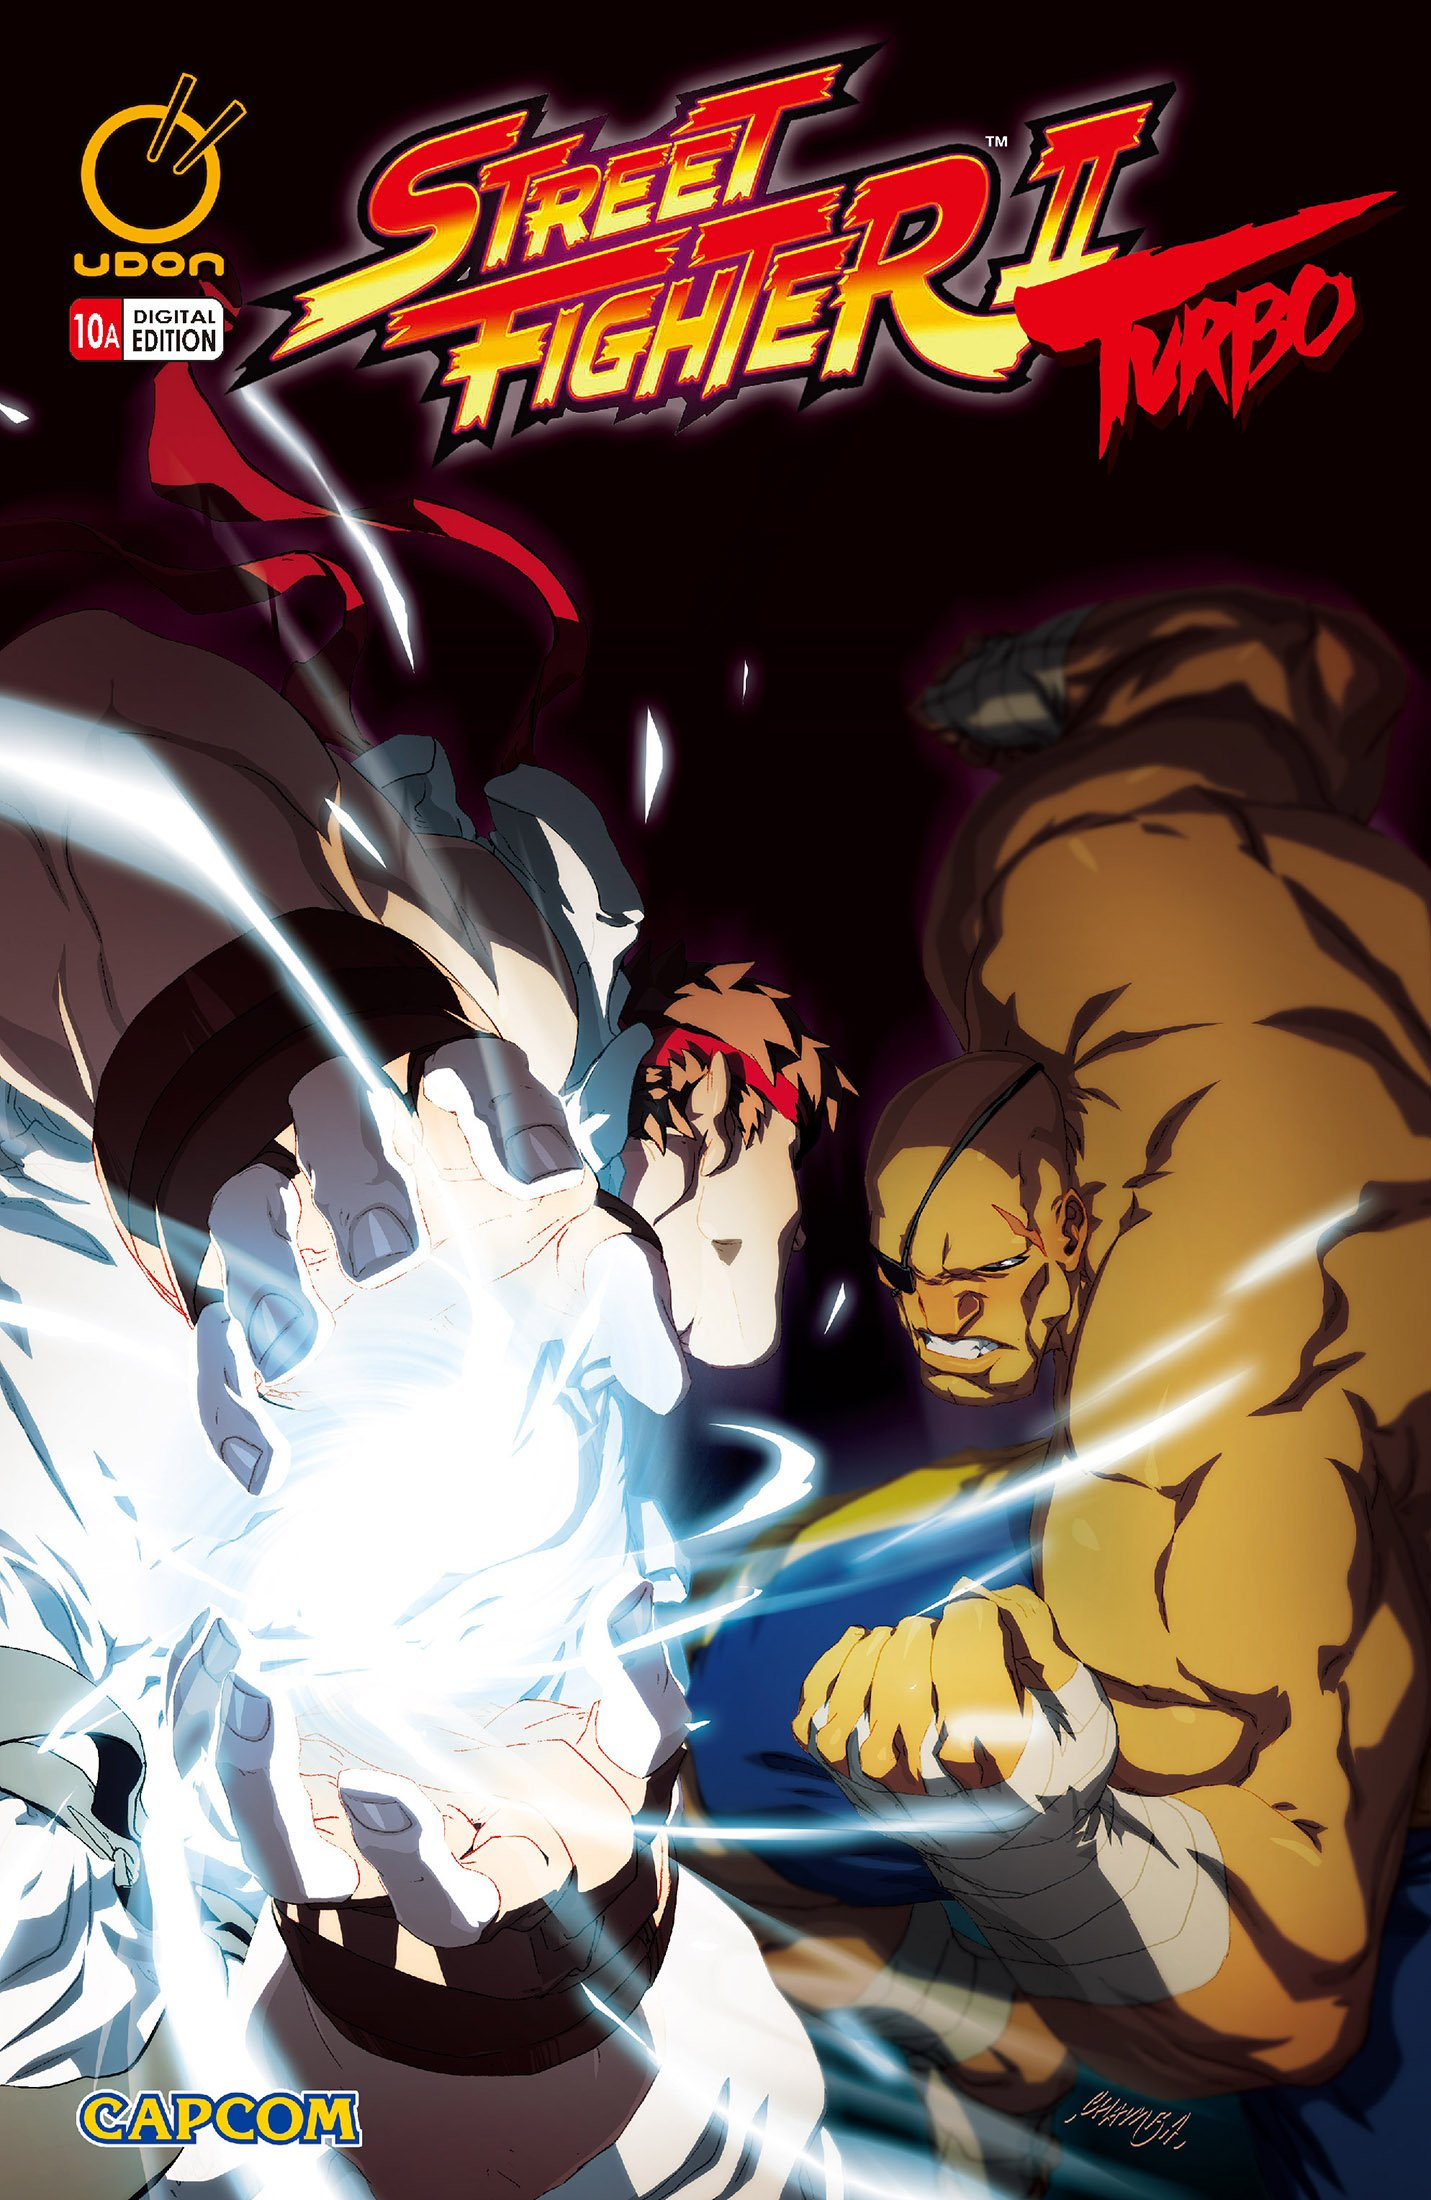 Street Fighter II Turbo 010 (December 2009) (cover a)